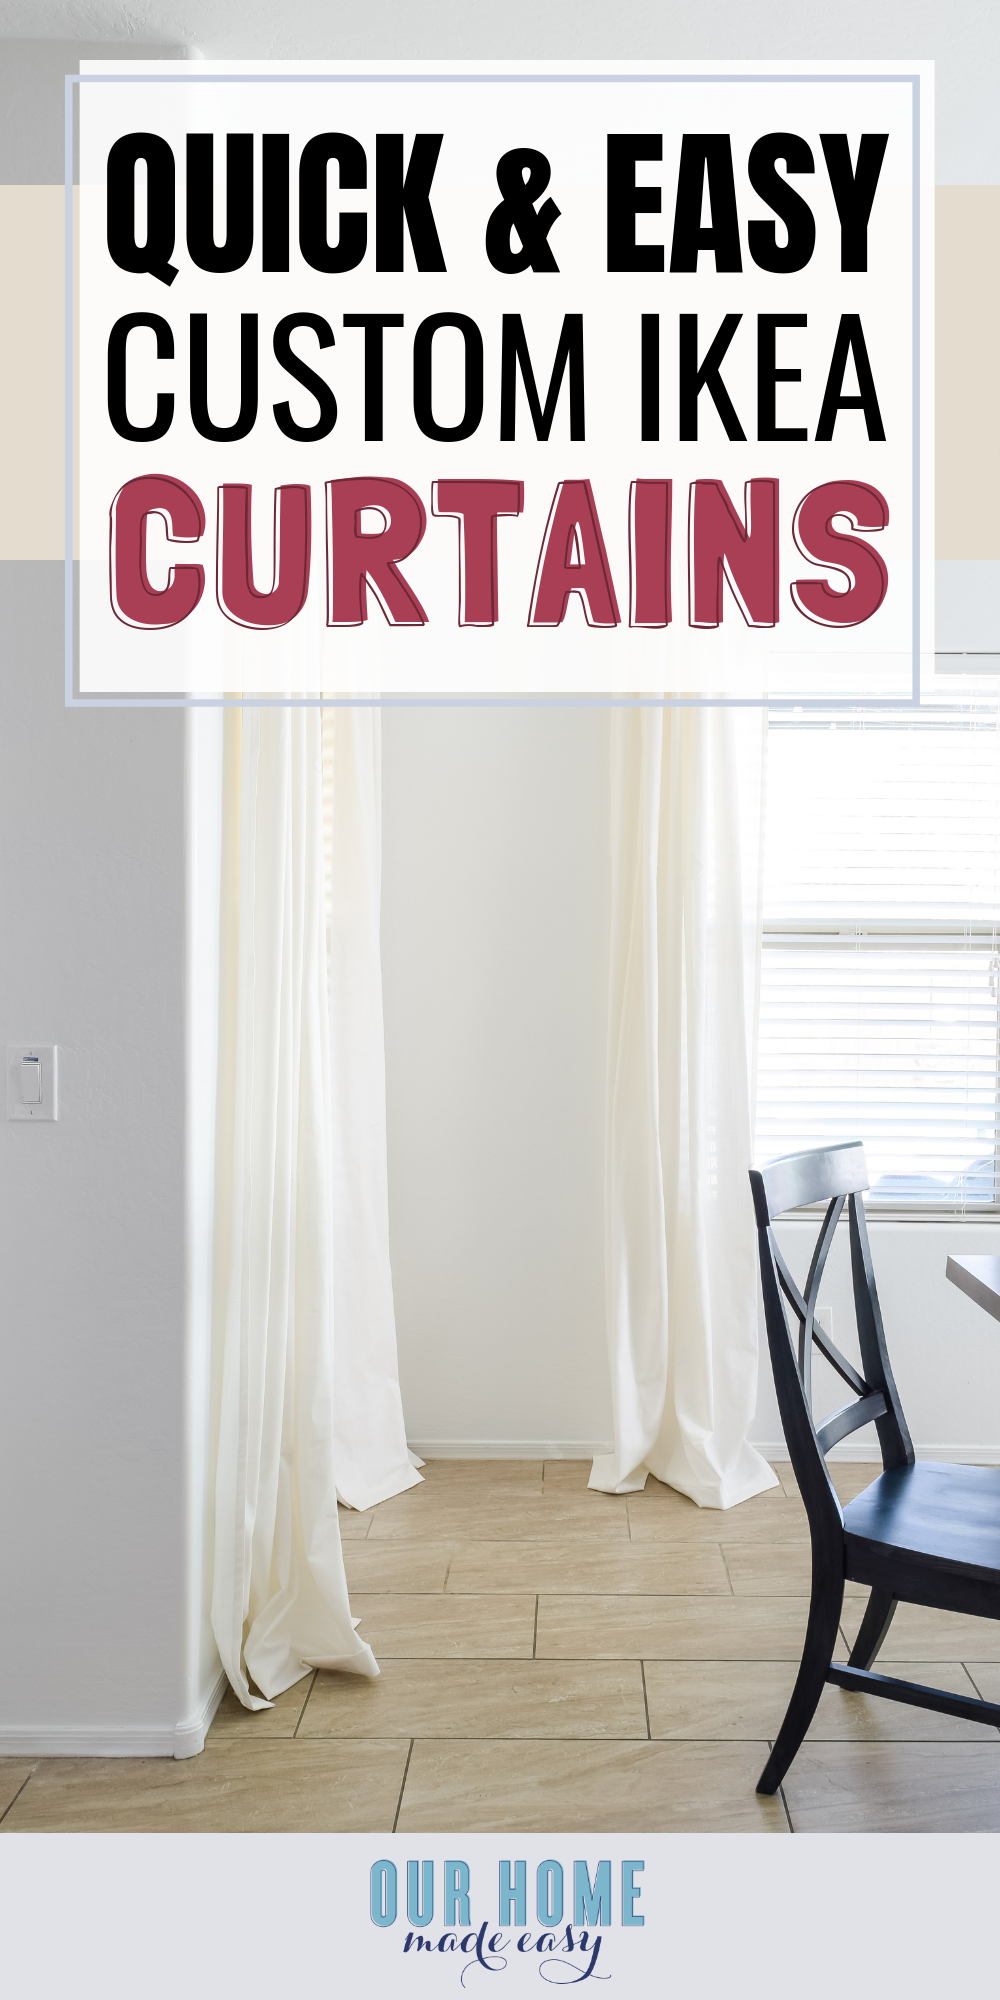 semi homemade DIY curtains